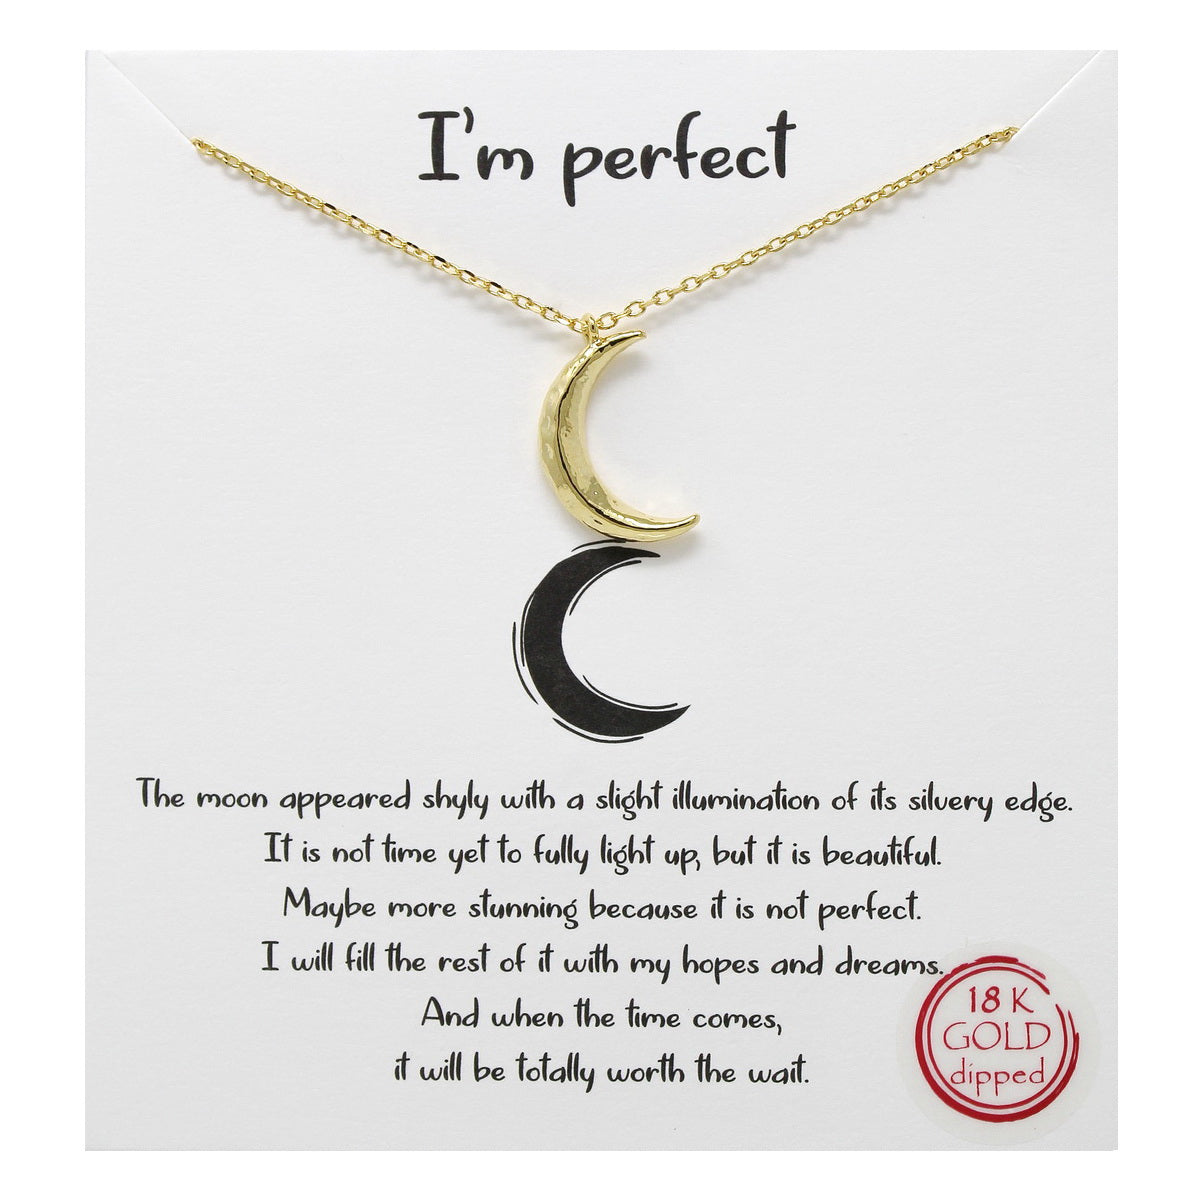 Tell Your Story: I'm Perfect Crescent Moon Simple Chain Necklace